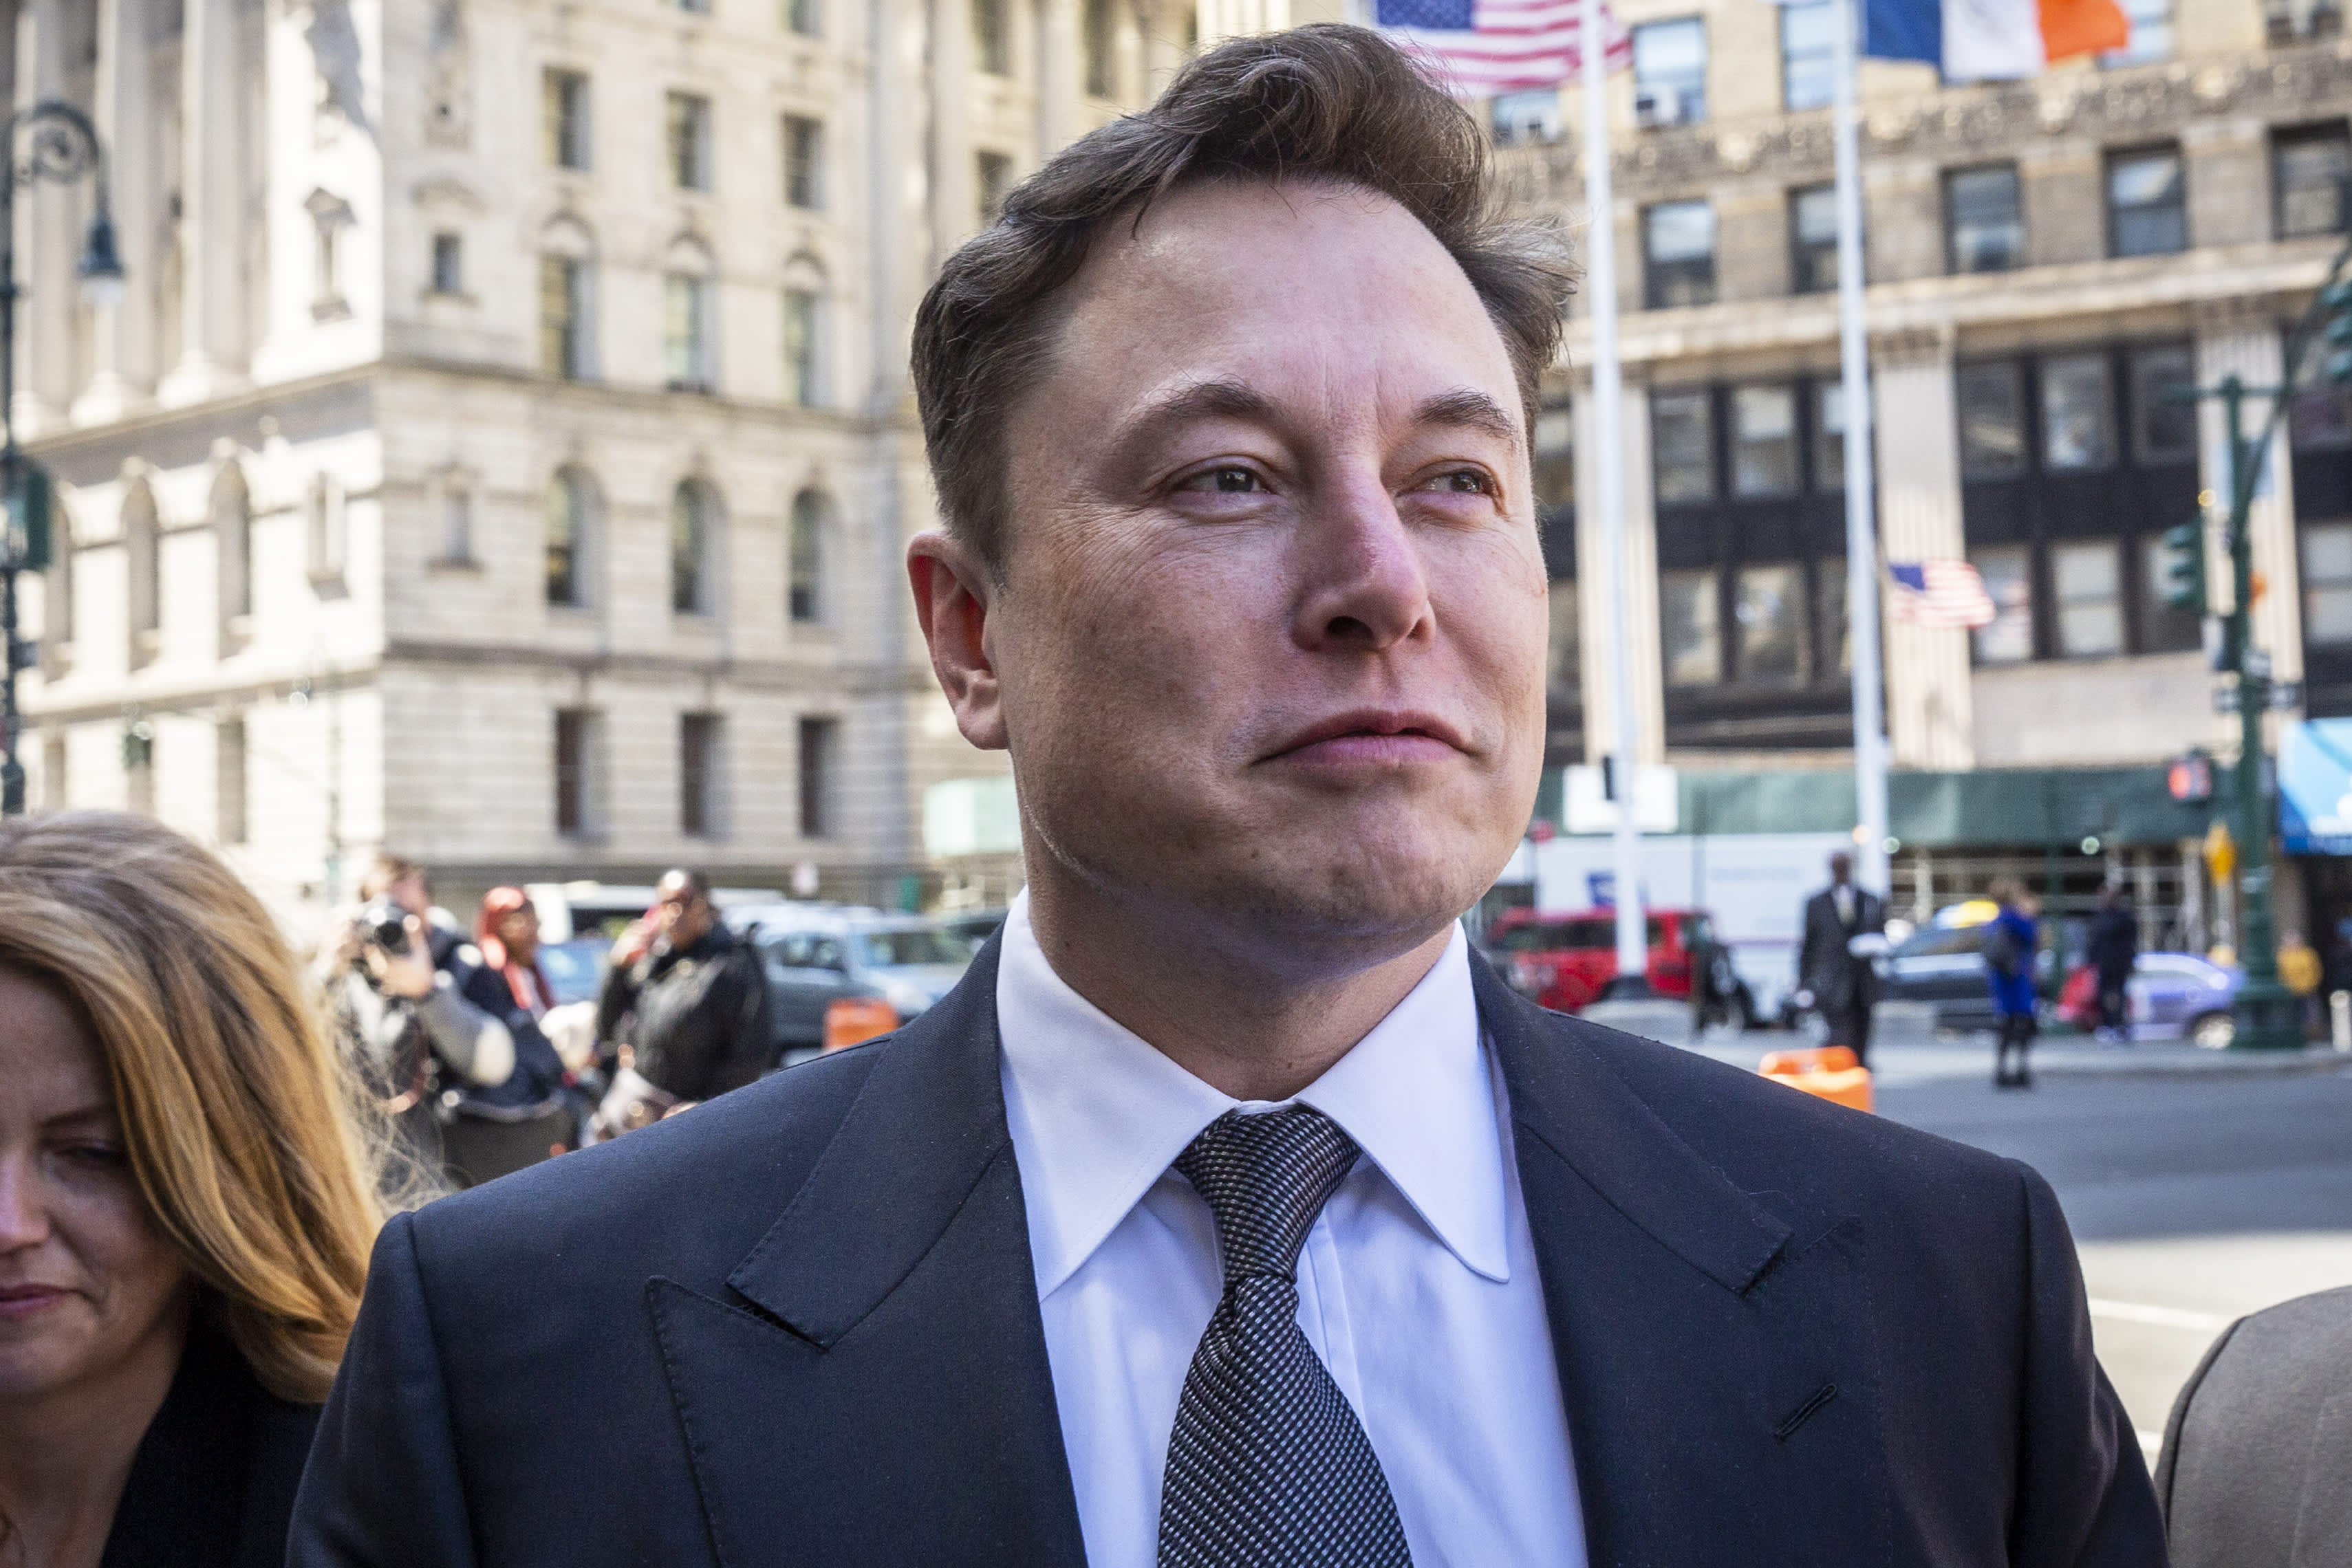 Elon Musk and SEC reach agreement over Tesla CEO's use of Twitter